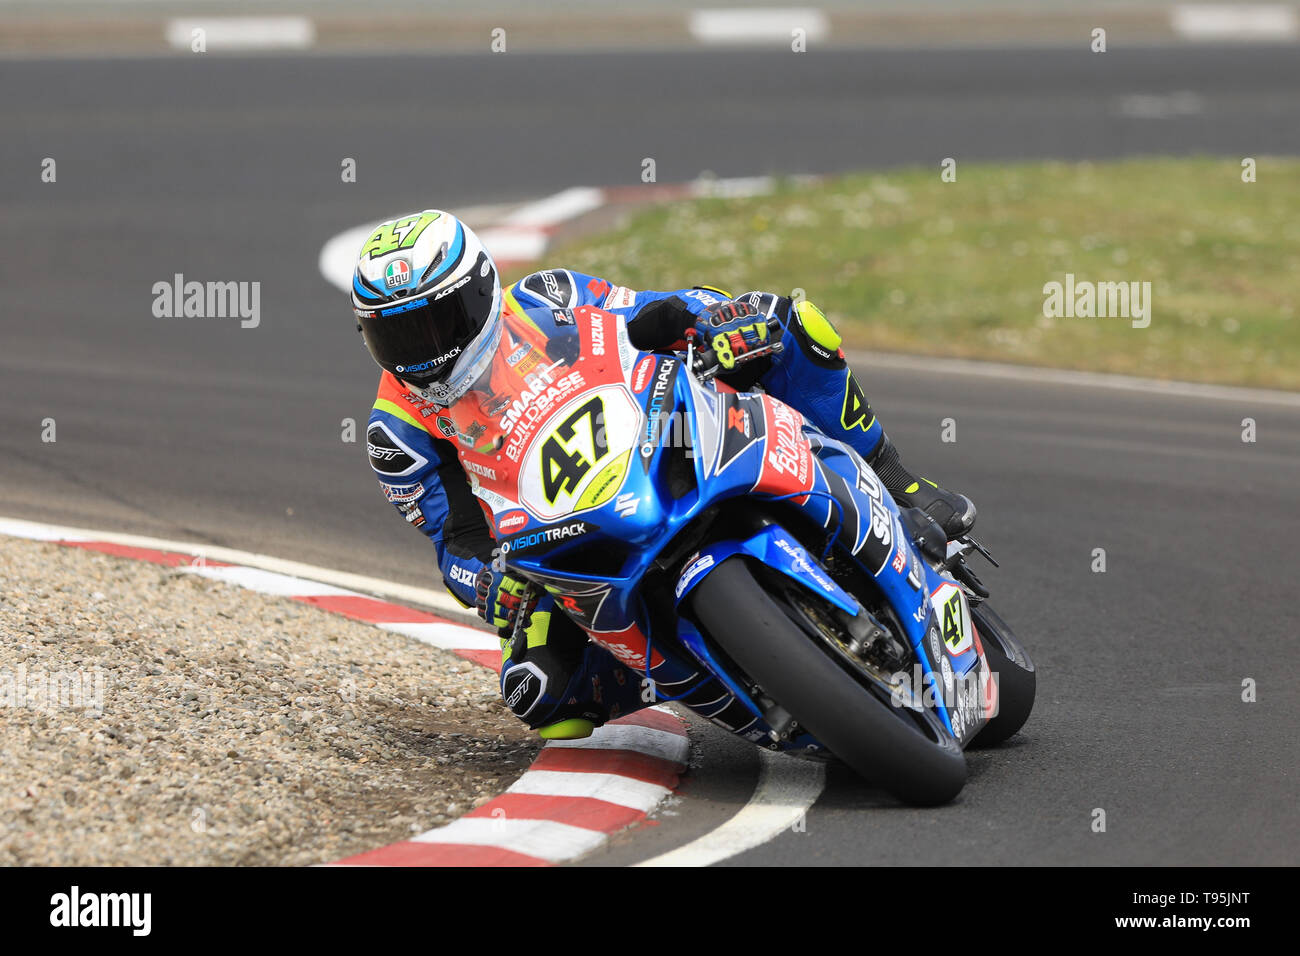 Portrush, Northern Ireland. 16th May, 2019. International North West 200 Motorcycle road racing, Thursday practice and evening racing; Richard Cooper went 8th fastest on the Buildbase Suzuki Suzuki during the SuperBike qualifying session - his first visit to the NorthWest course Credit: Action Plus Sports/Alamy Live News - Stock Image